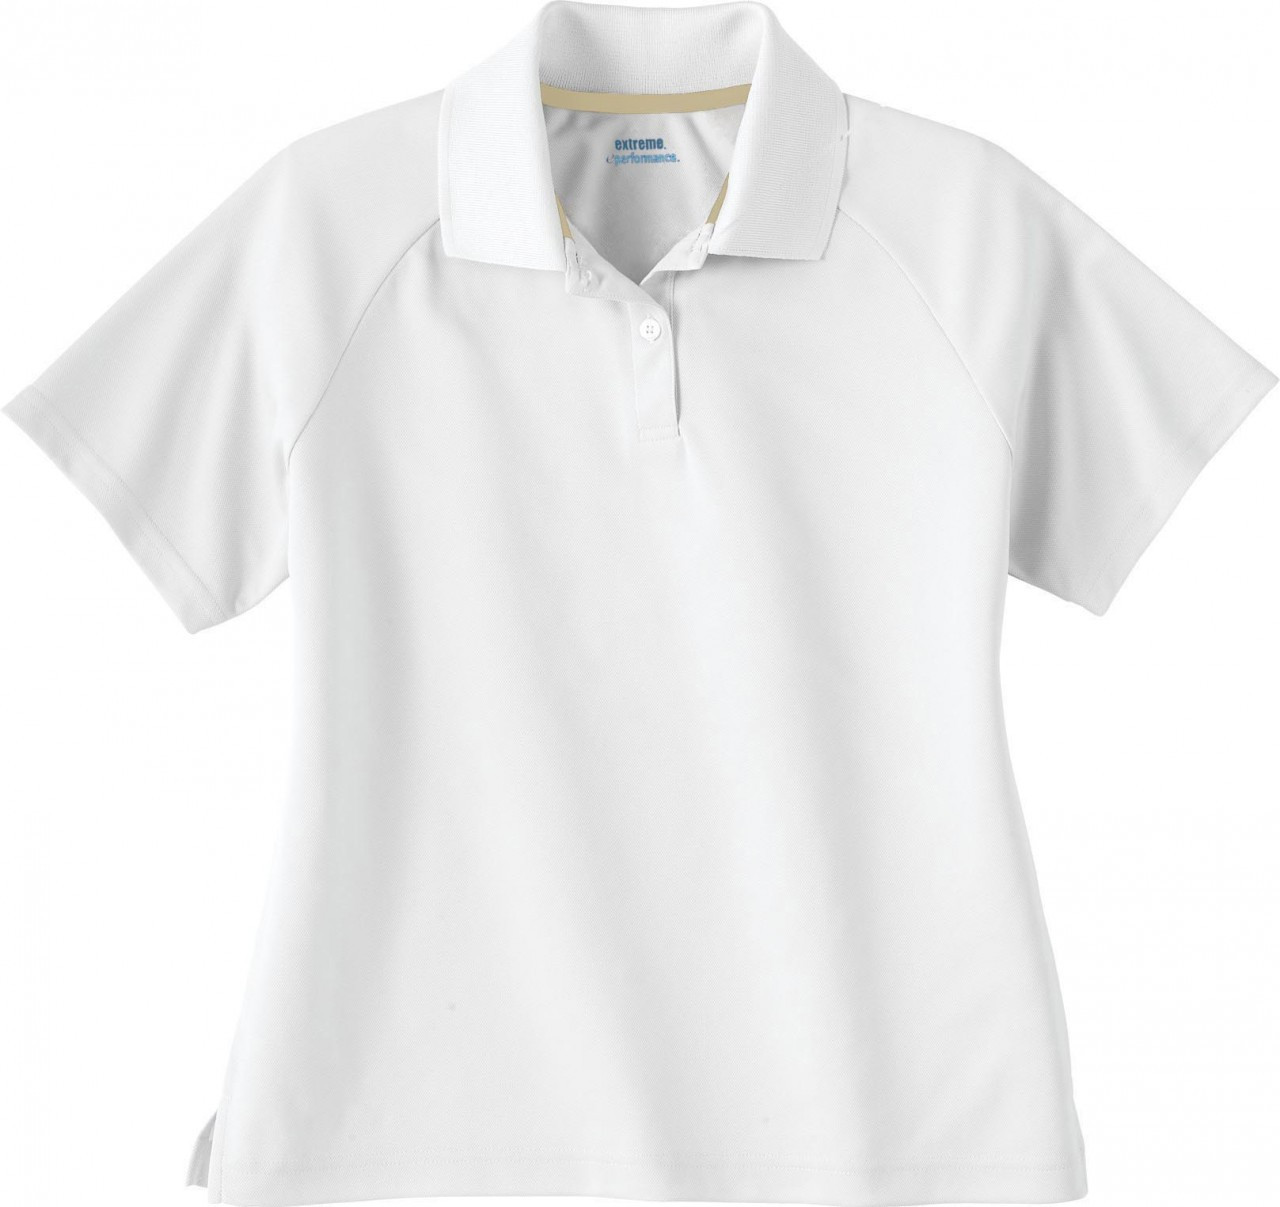 White - 75046 Extreme Ladies' Eperformance Pique Polo Shirt | BlankClothing.ca